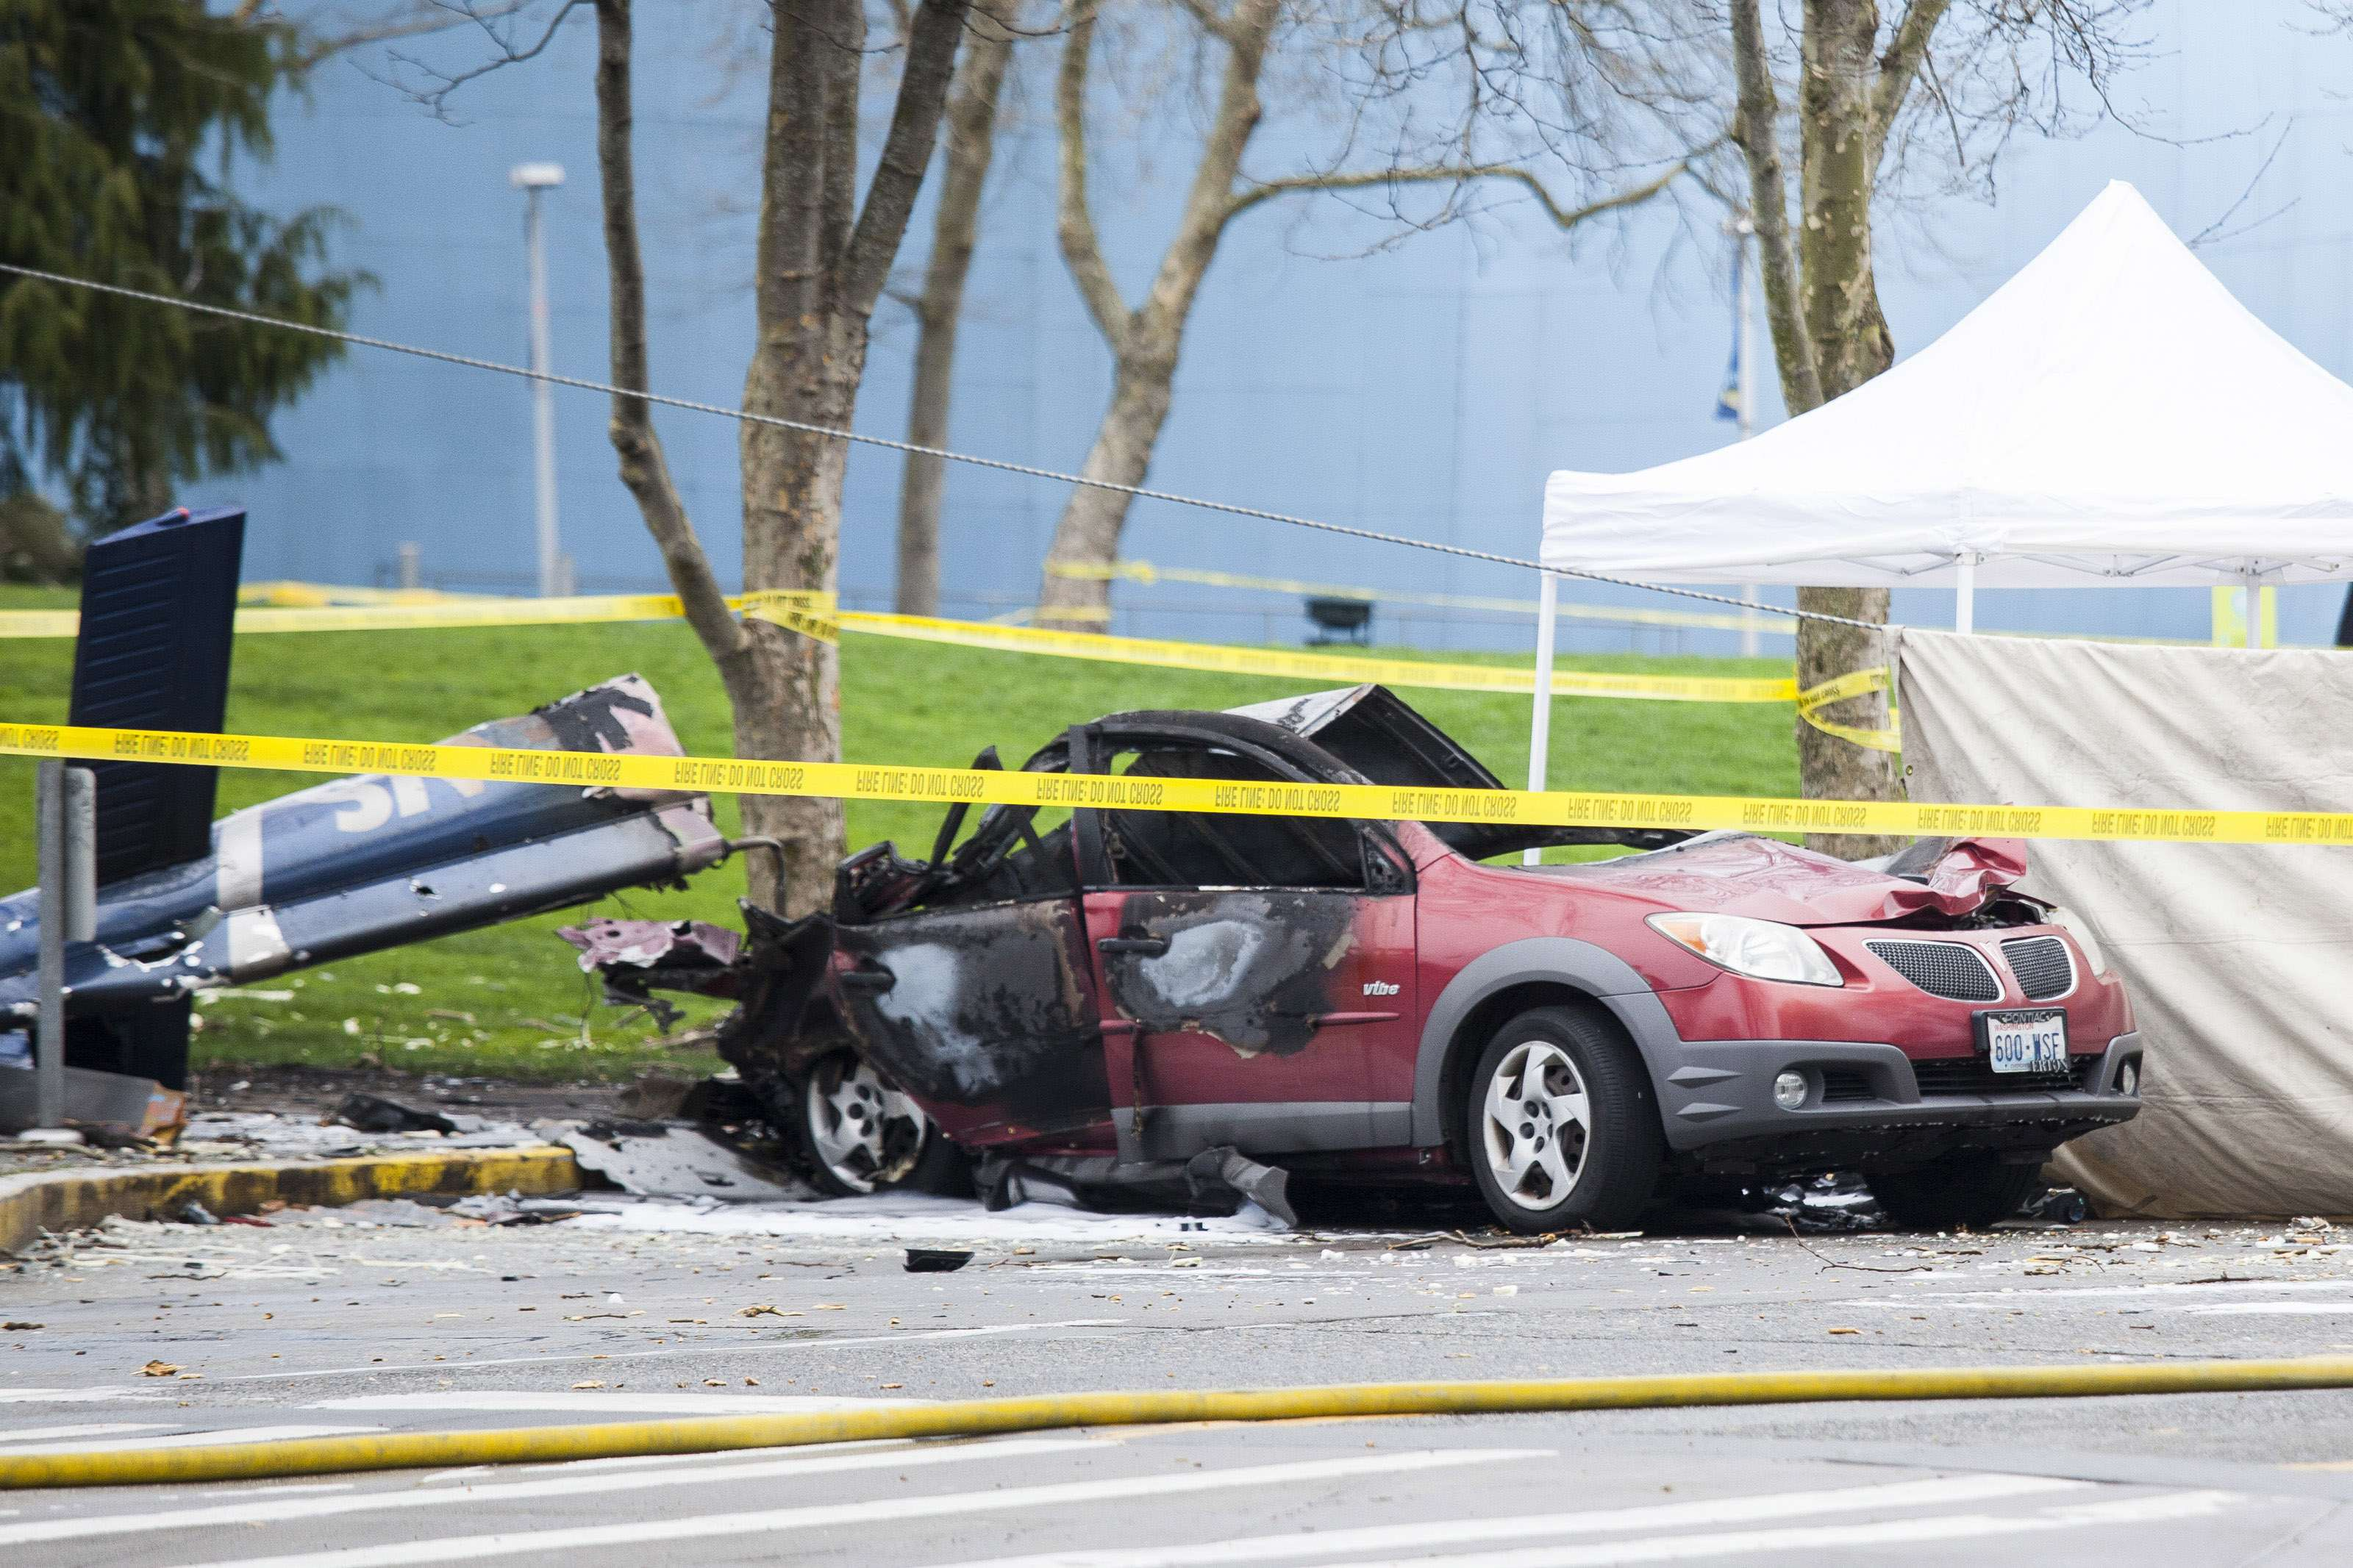 Wreckage is pictured where a television news helicopter crashed near the Space Needle in Seattle